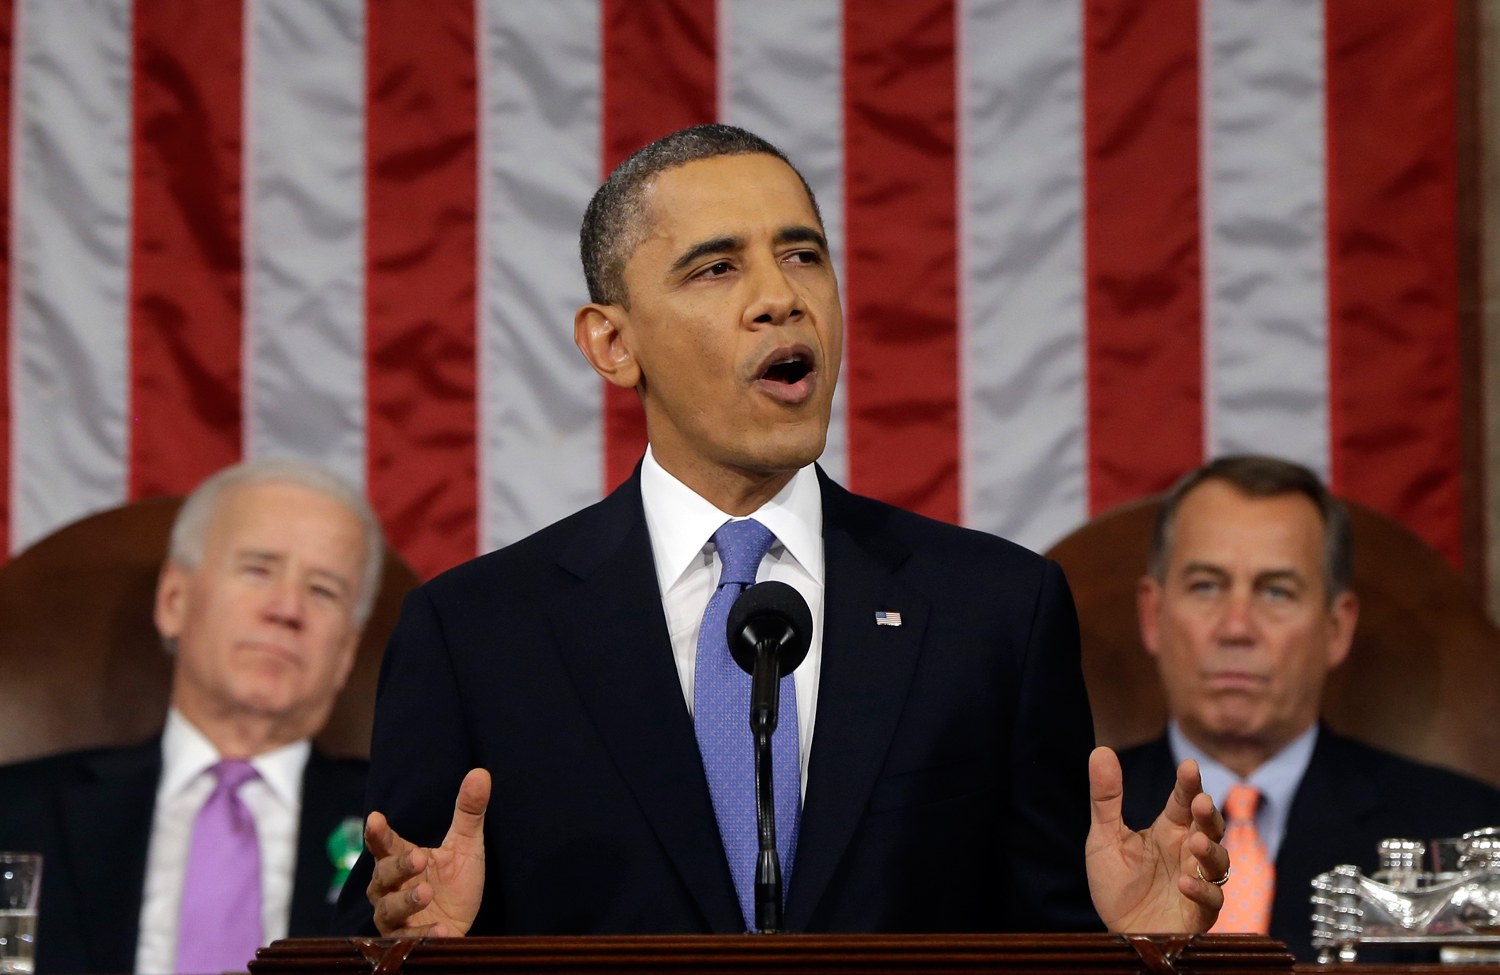 President-Obama-during-his-2013-State-of-the-Union-address